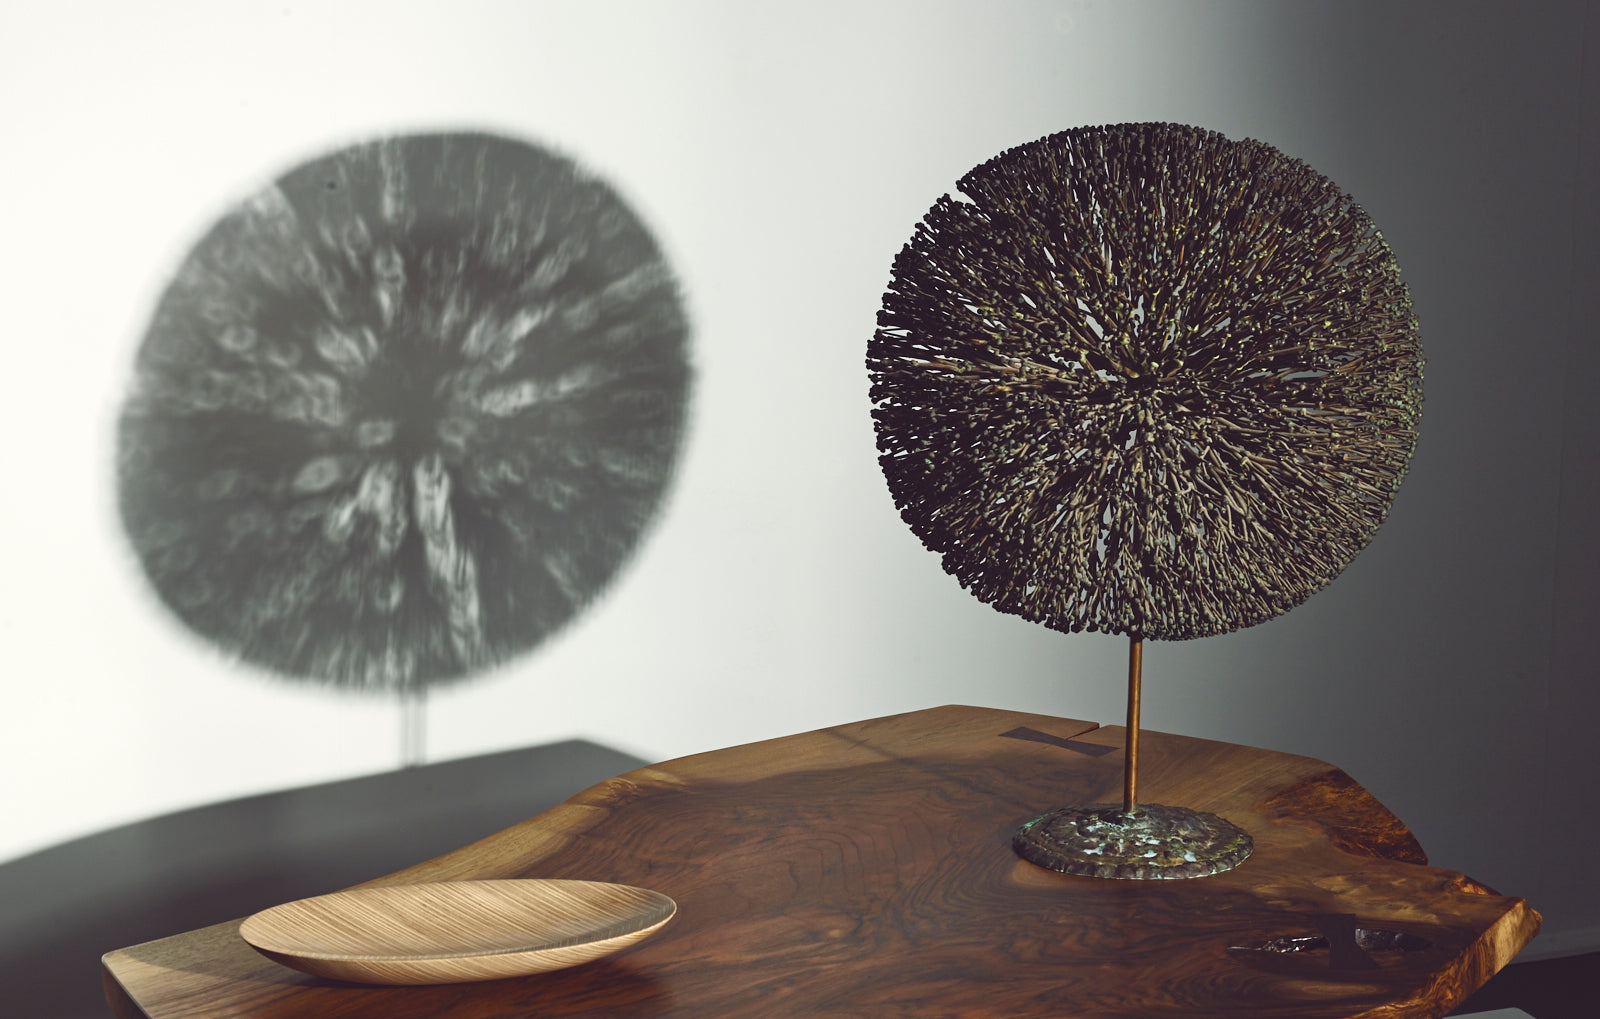 Harry Bertoia Rare Bush Form, 1968 - The Exchange Int